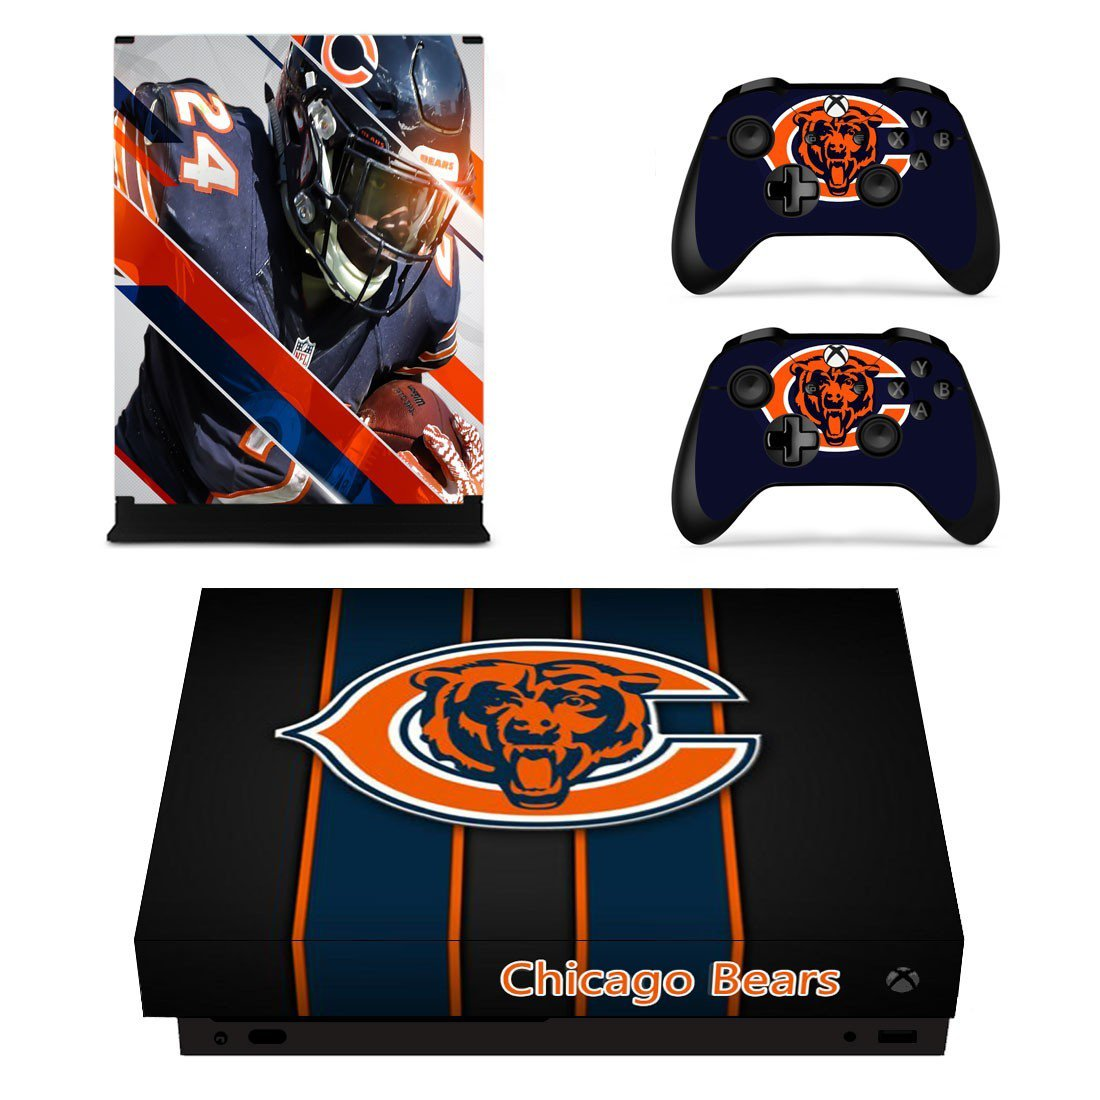 Chicago Bears decal skin sticker for Xbox One X console and controllers